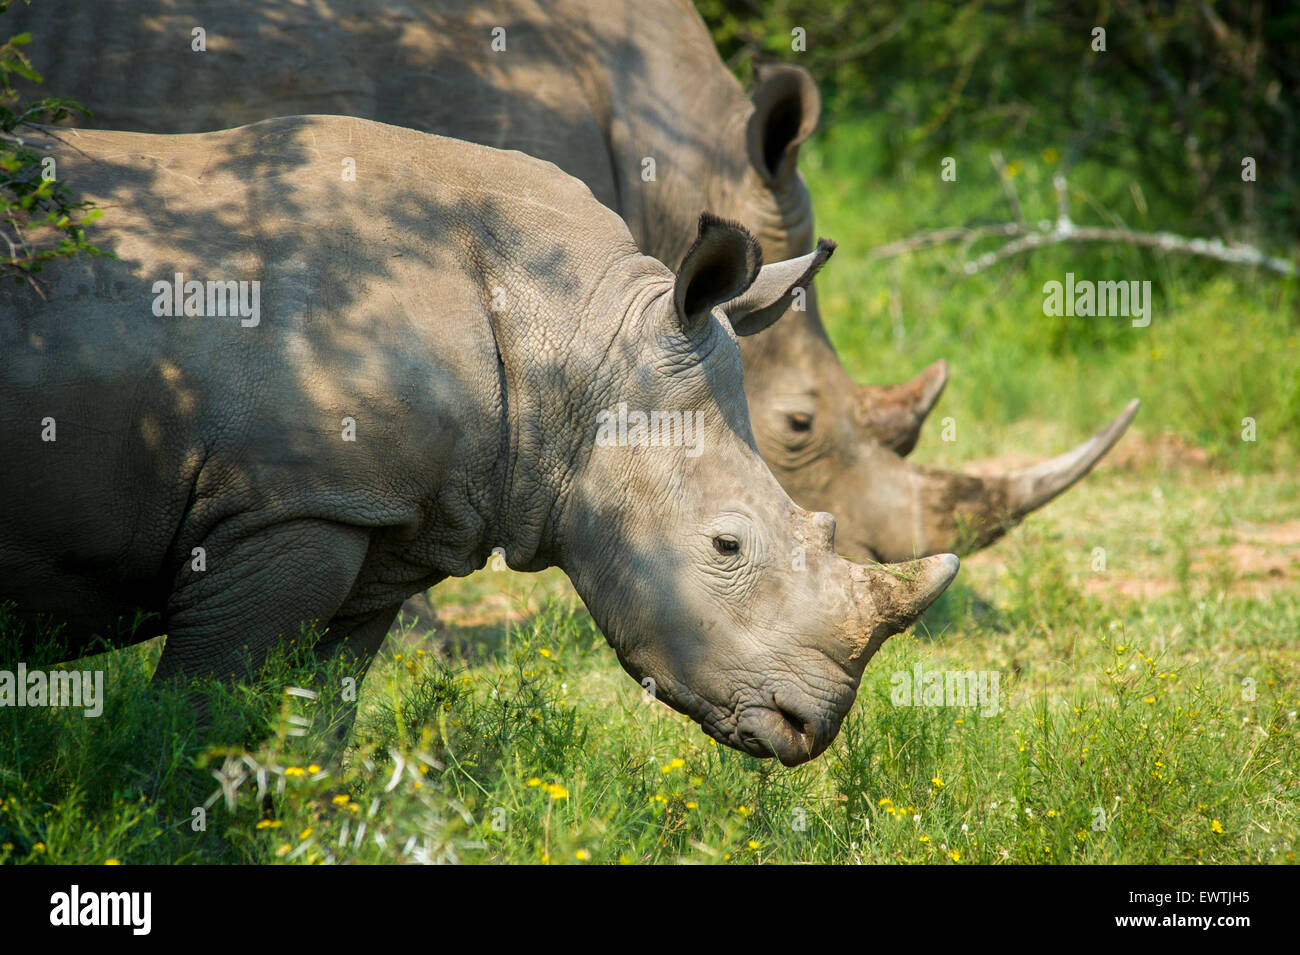 SOUTH AFRICA- A pair of rhinoceros' (Rhinocerotidae) on the Dinokeng Game Reserve - Stock Image